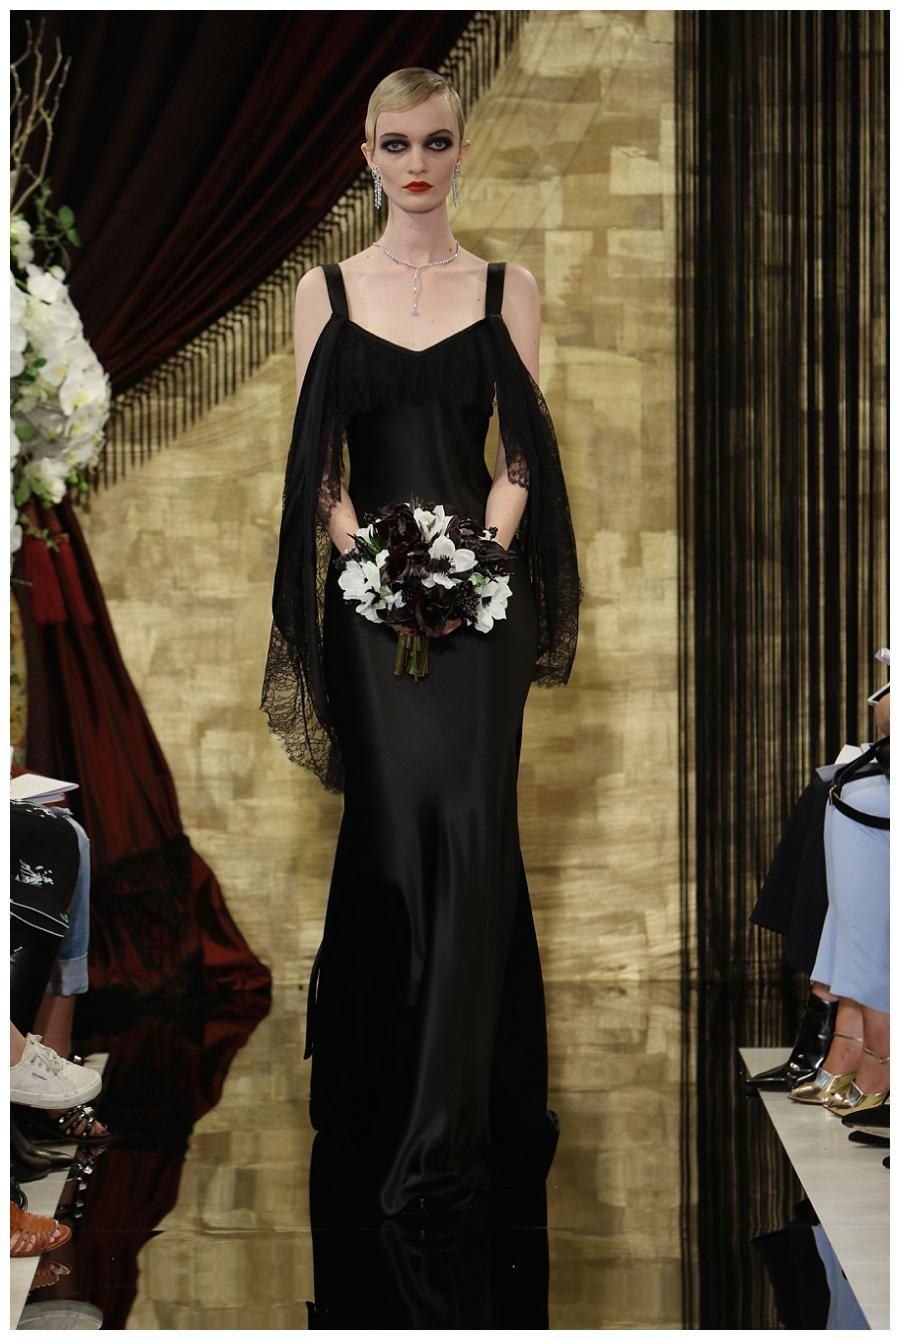 Red and black wedding dress  Wedding dress from the Theia Fall  Bridal collection  Bridal